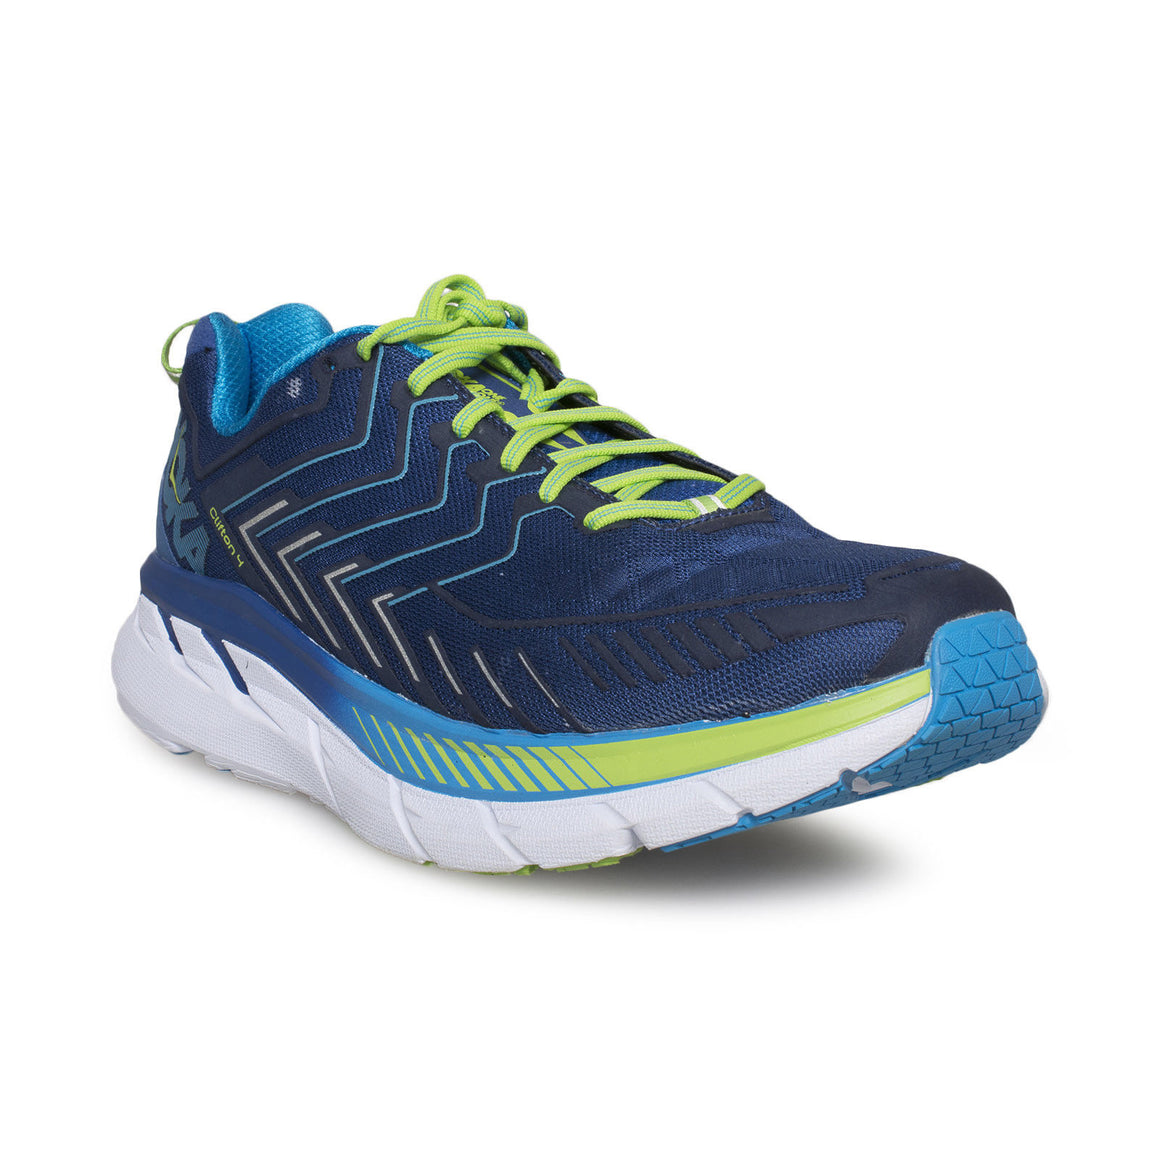 Hoka Clifton ATR 4 True Blue / Jasmine Green